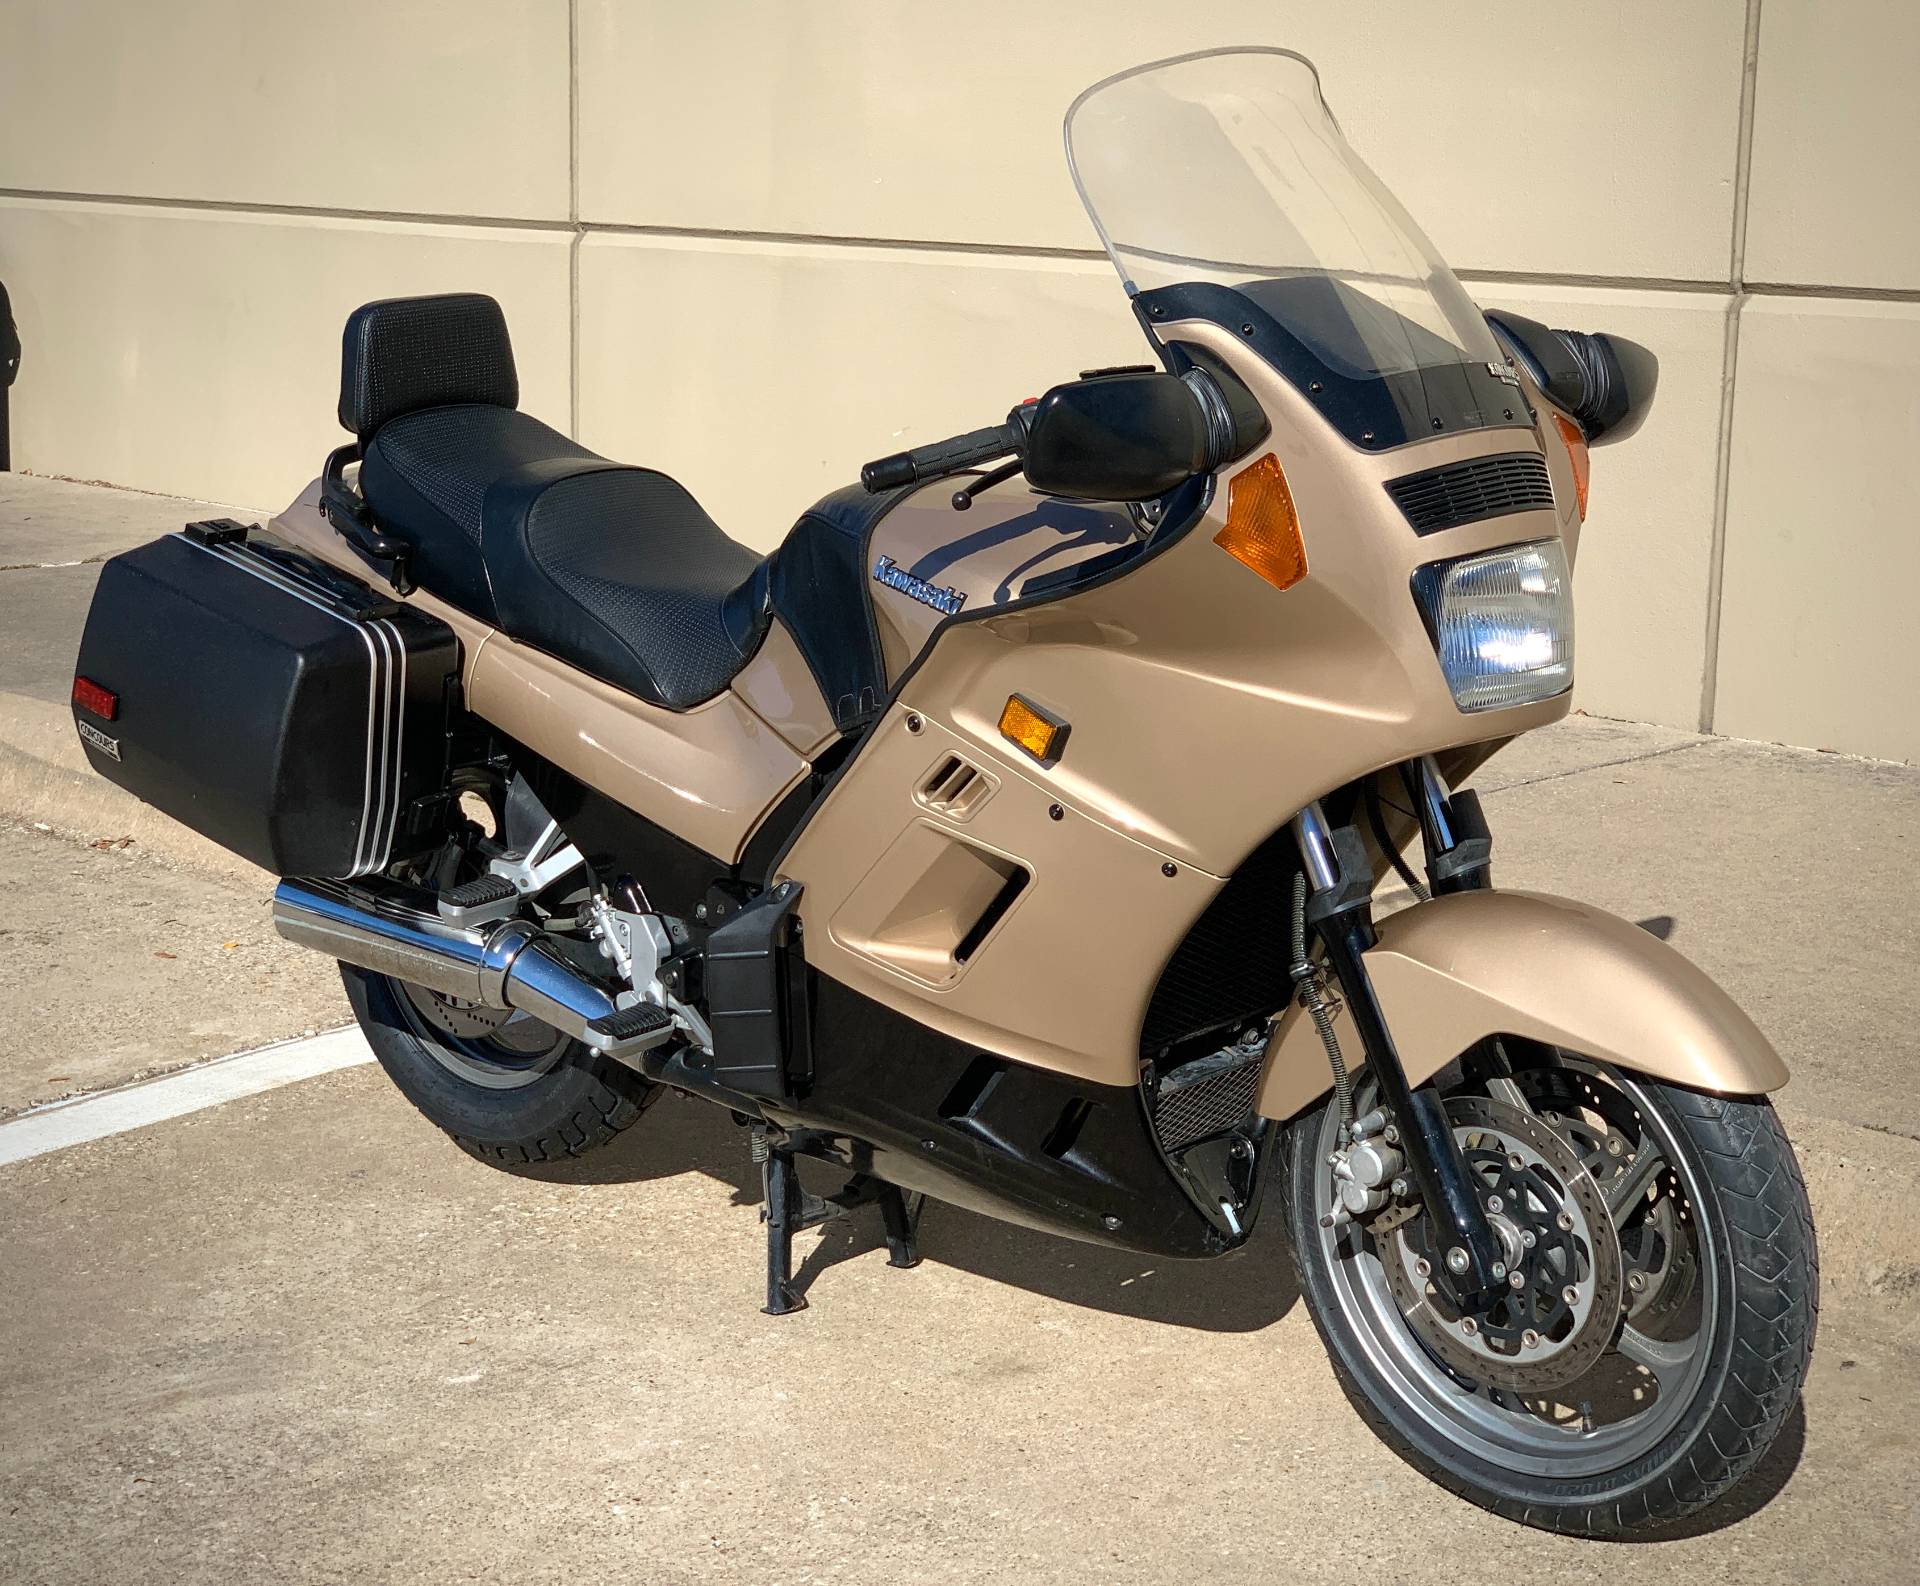 2005 Kawasaki Concours™ in Plano, Texas - Photo 2